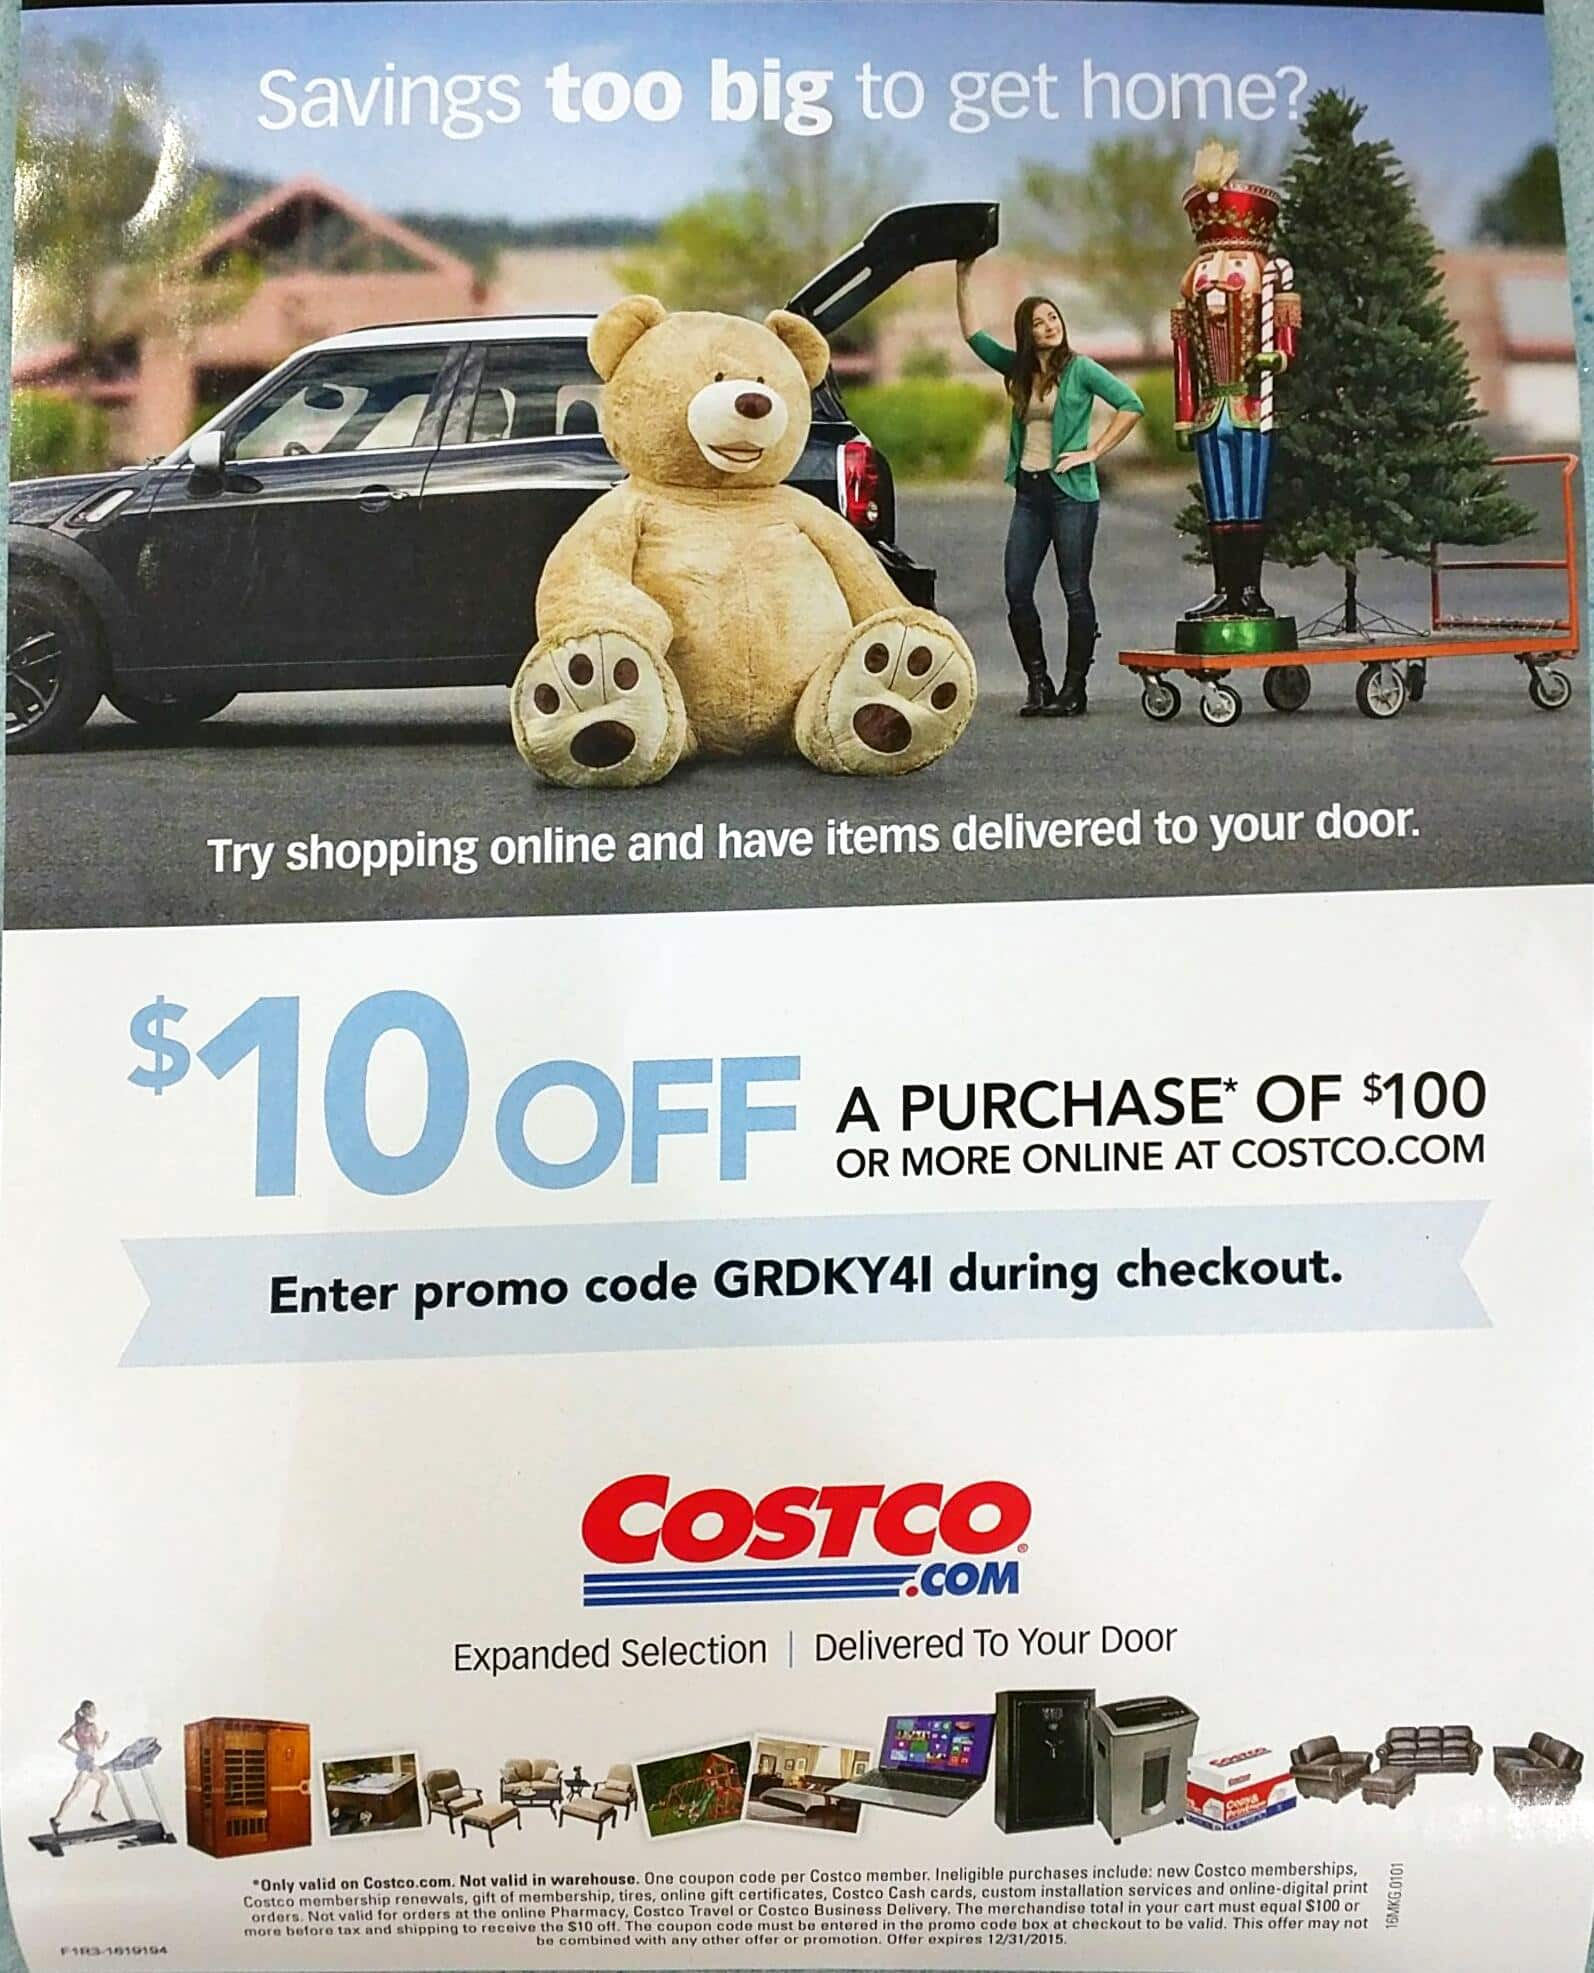 costco 10 off 100 on costco com one time use codes slickdeals net